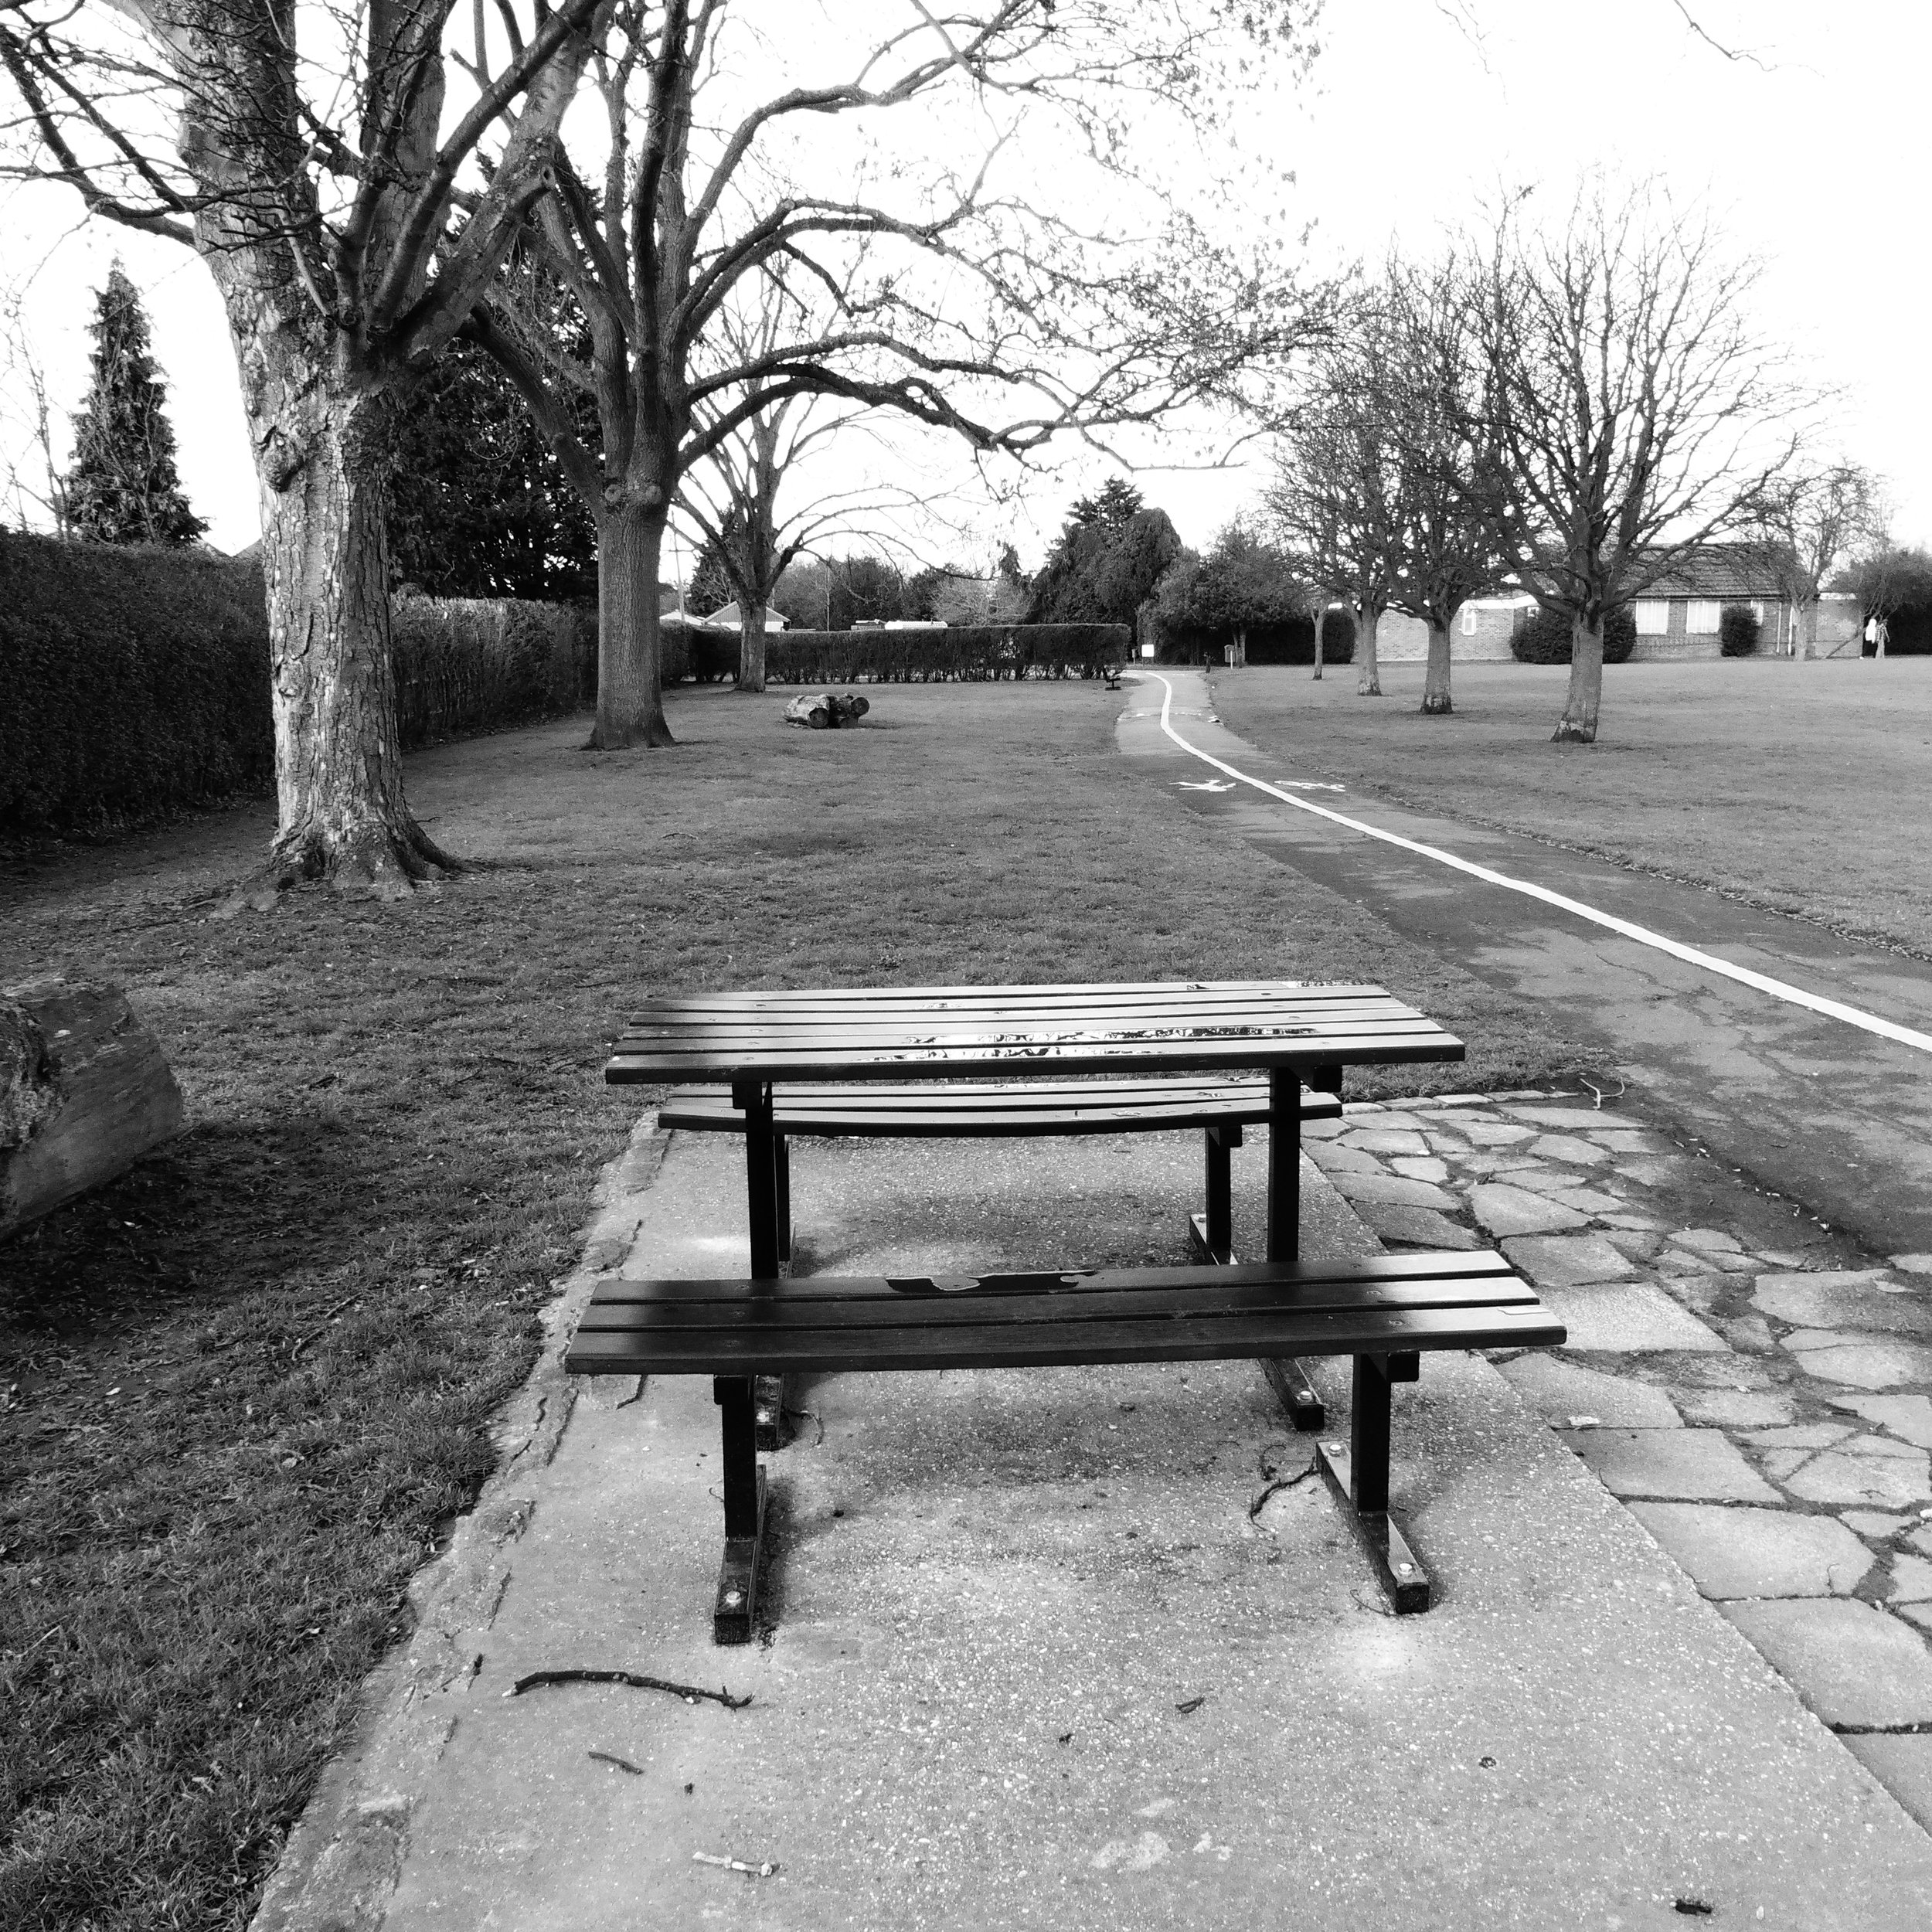 Empty bench and table, by Terry Freedman